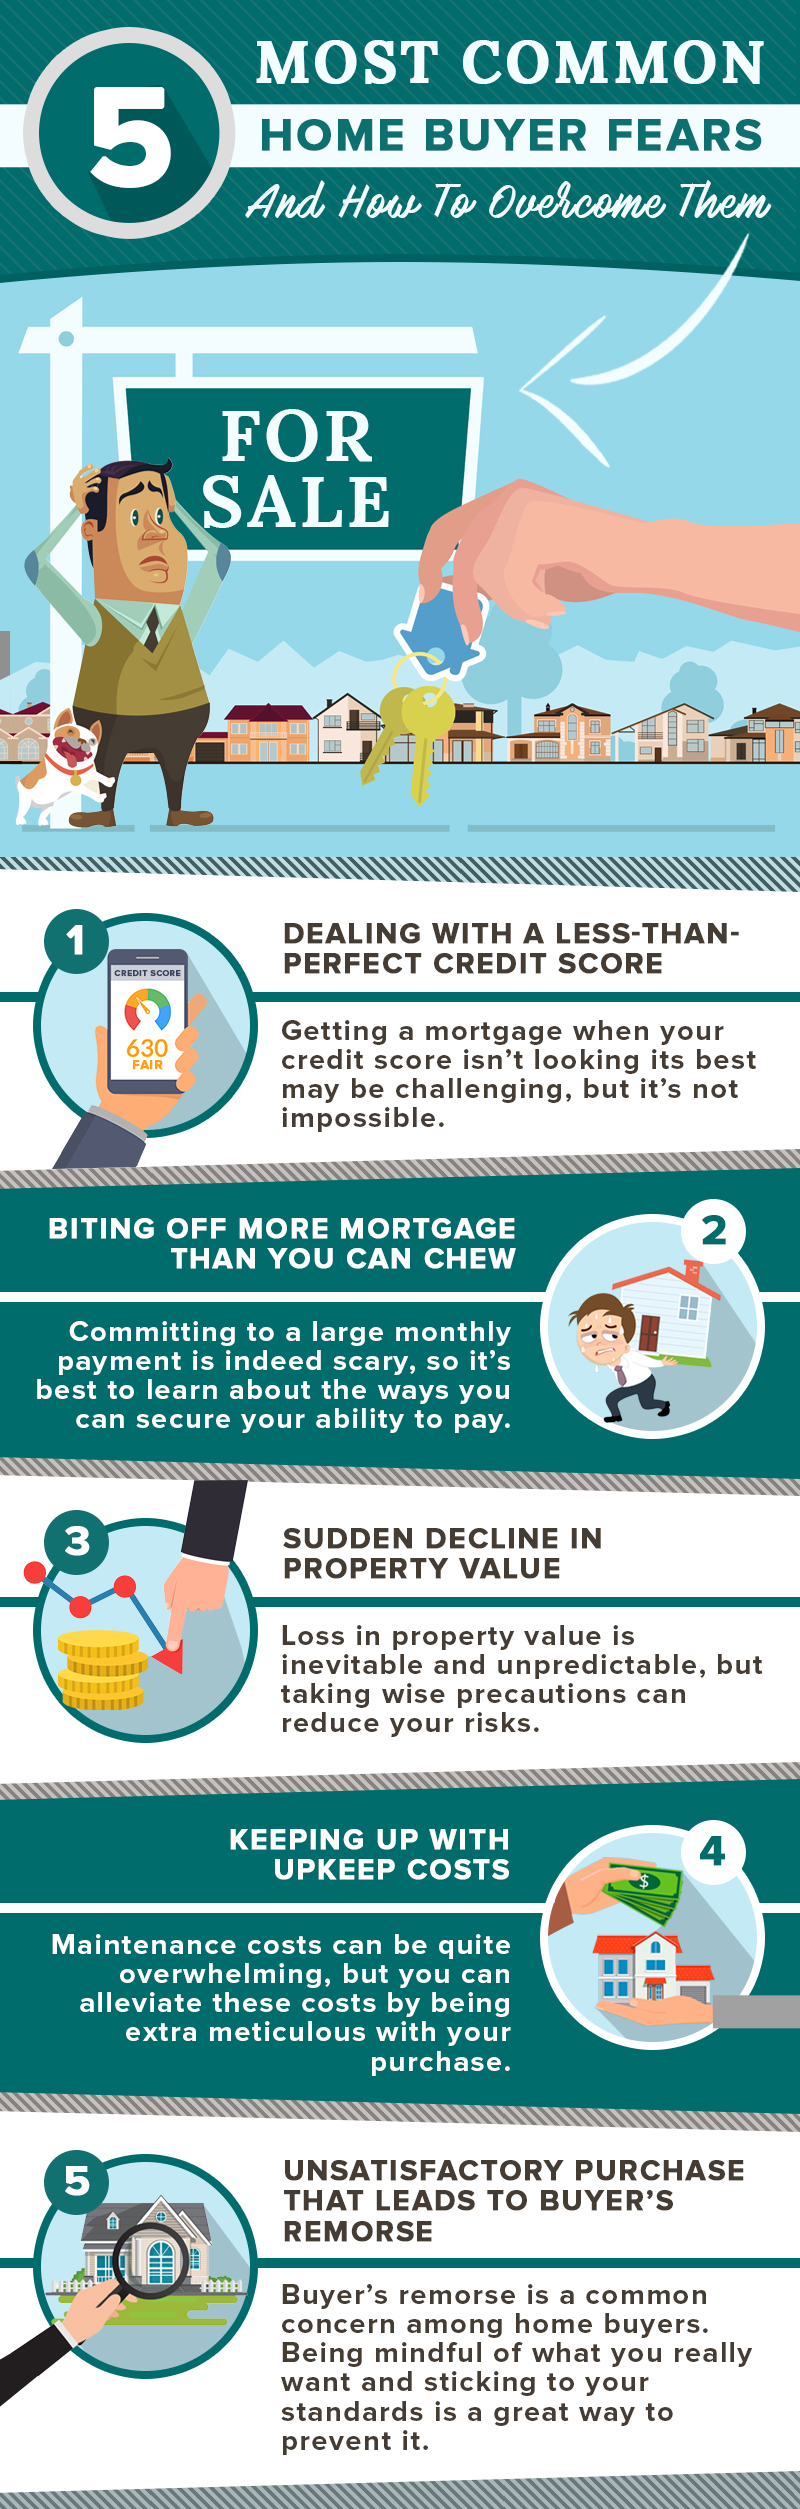 5 Most Common Home Buyer Fears And How To Overcome Them.jpg